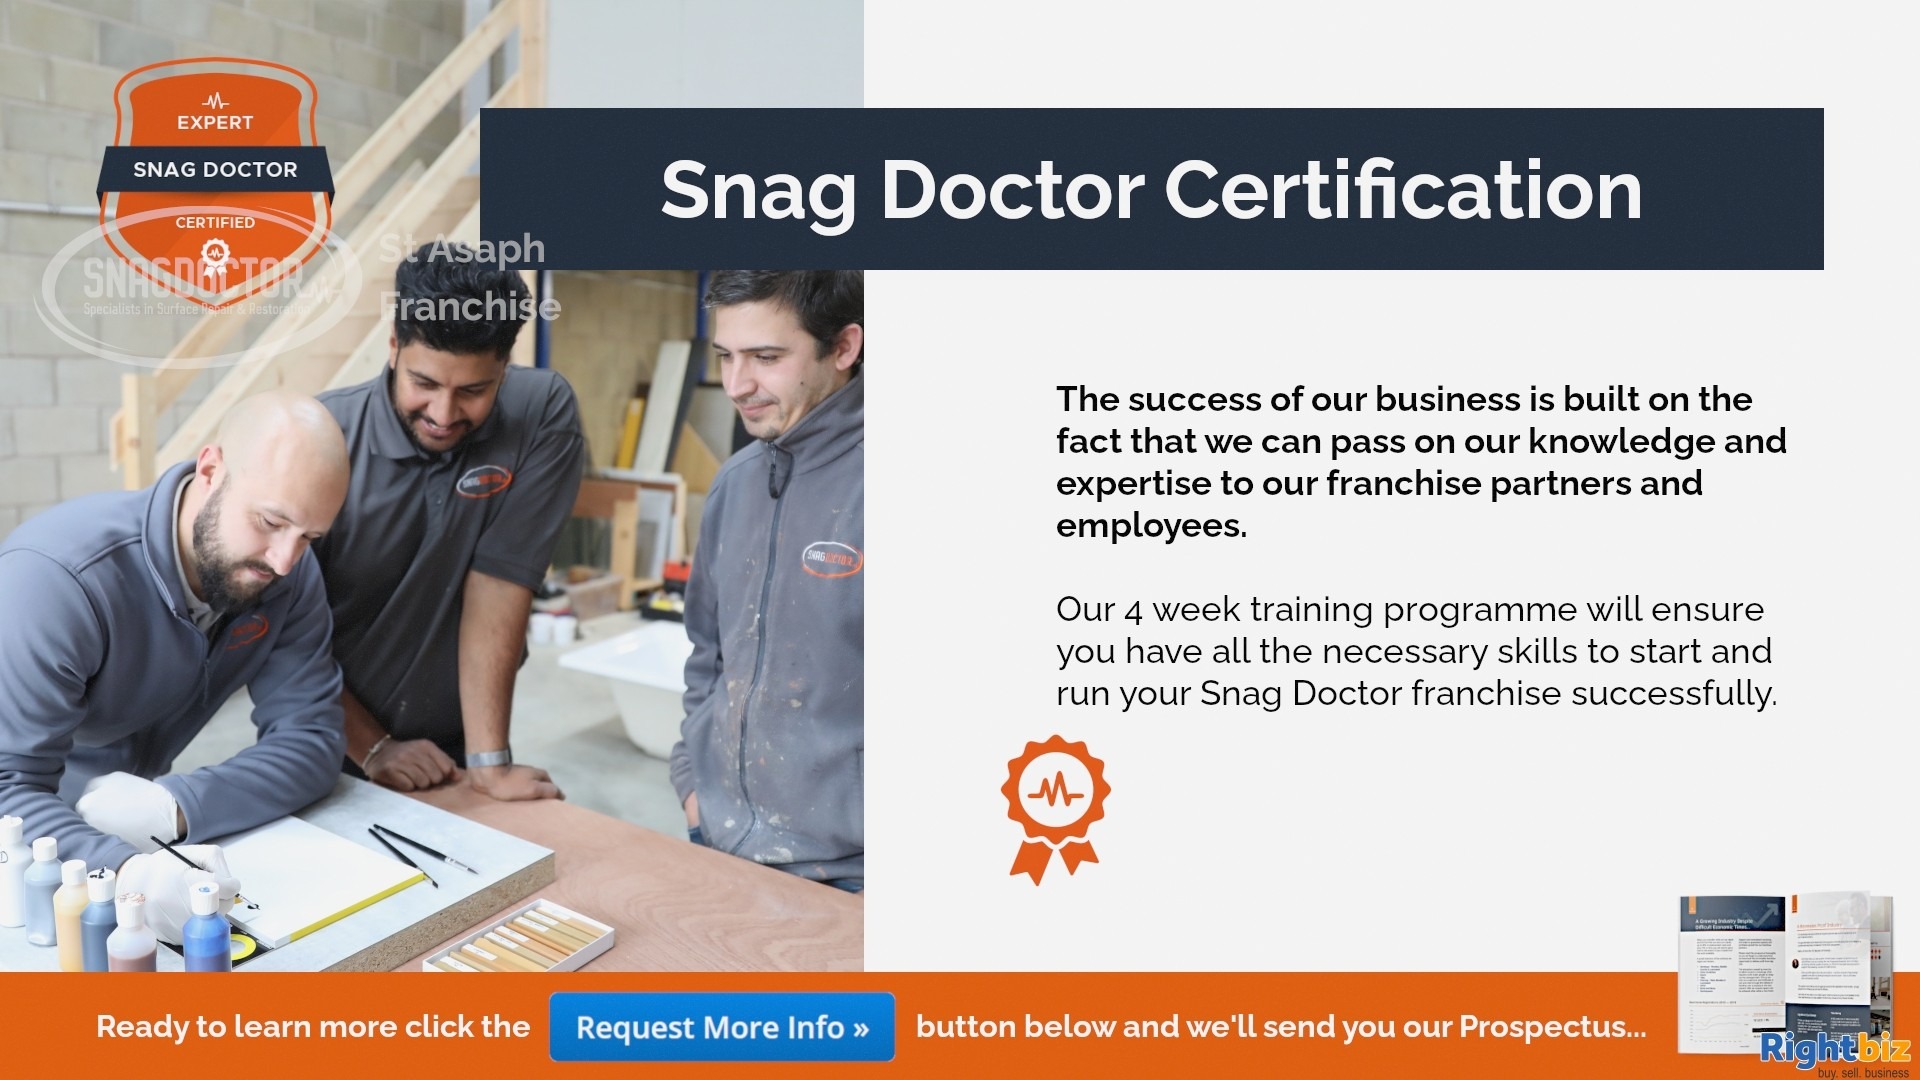 Snag Doctor 100% Govt Funded Franchise in Saint Asaph With Huge Demand from Major House Builders - Image 4